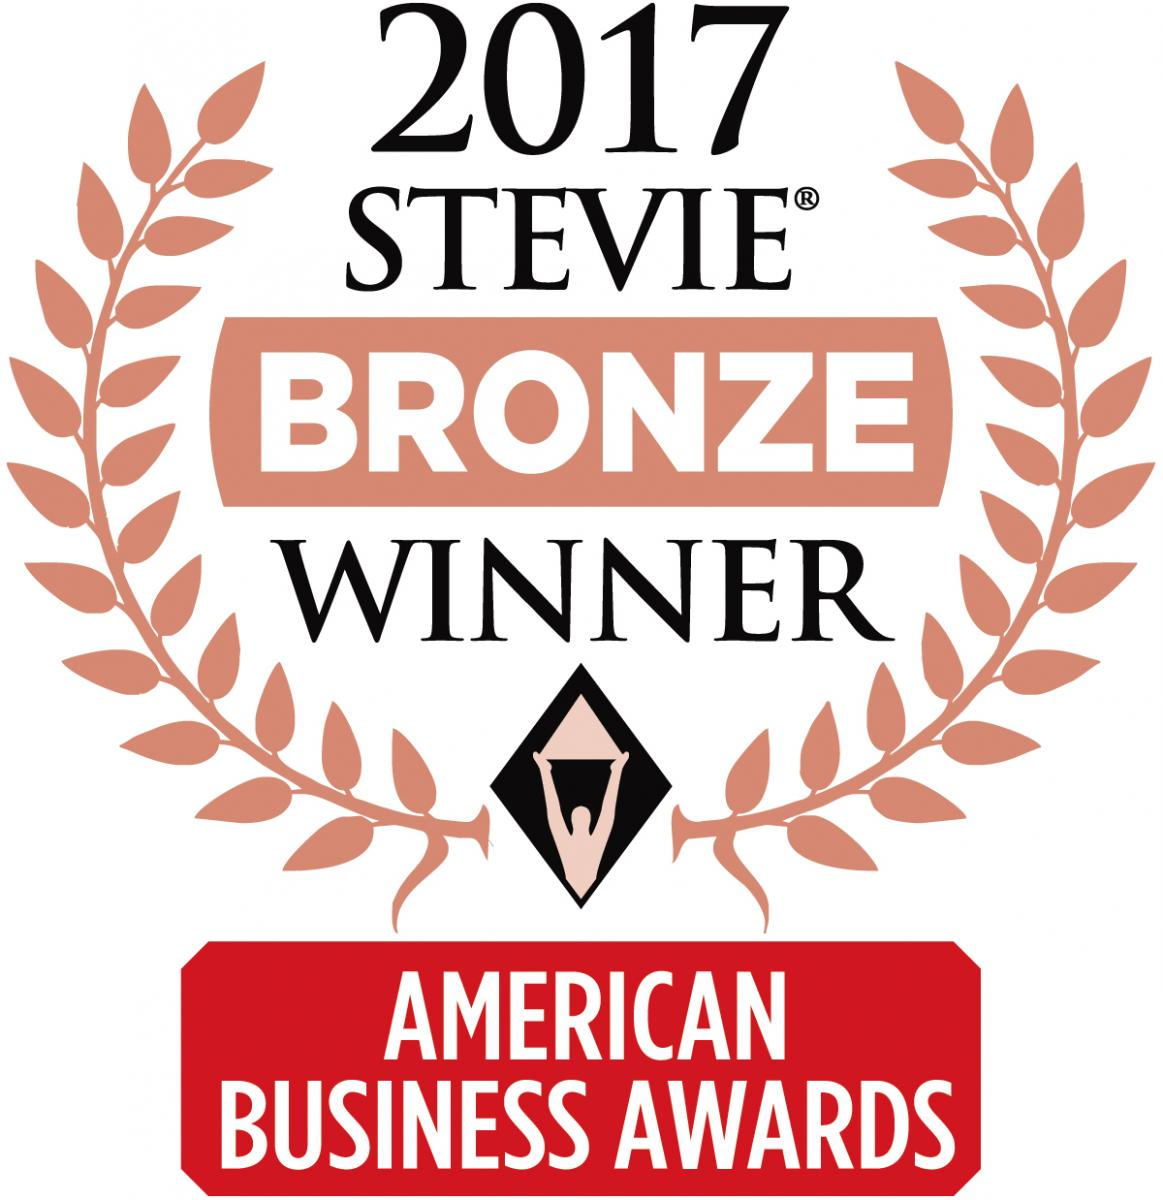 BDA, 2017 Stevie Bronze Winner